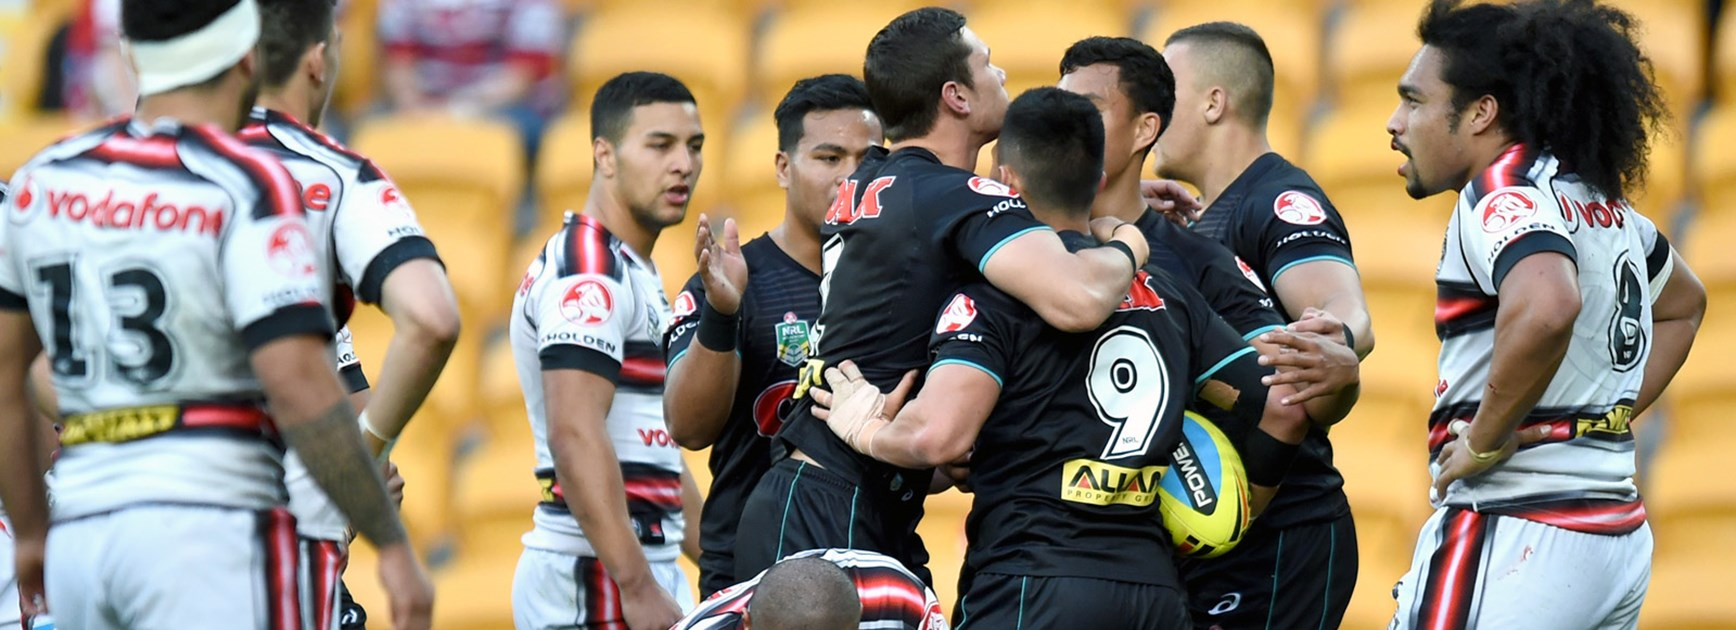 The Penrith Panthers NYC side are through to the grand final after defeating the Warriors in Friday night's preliminary final.